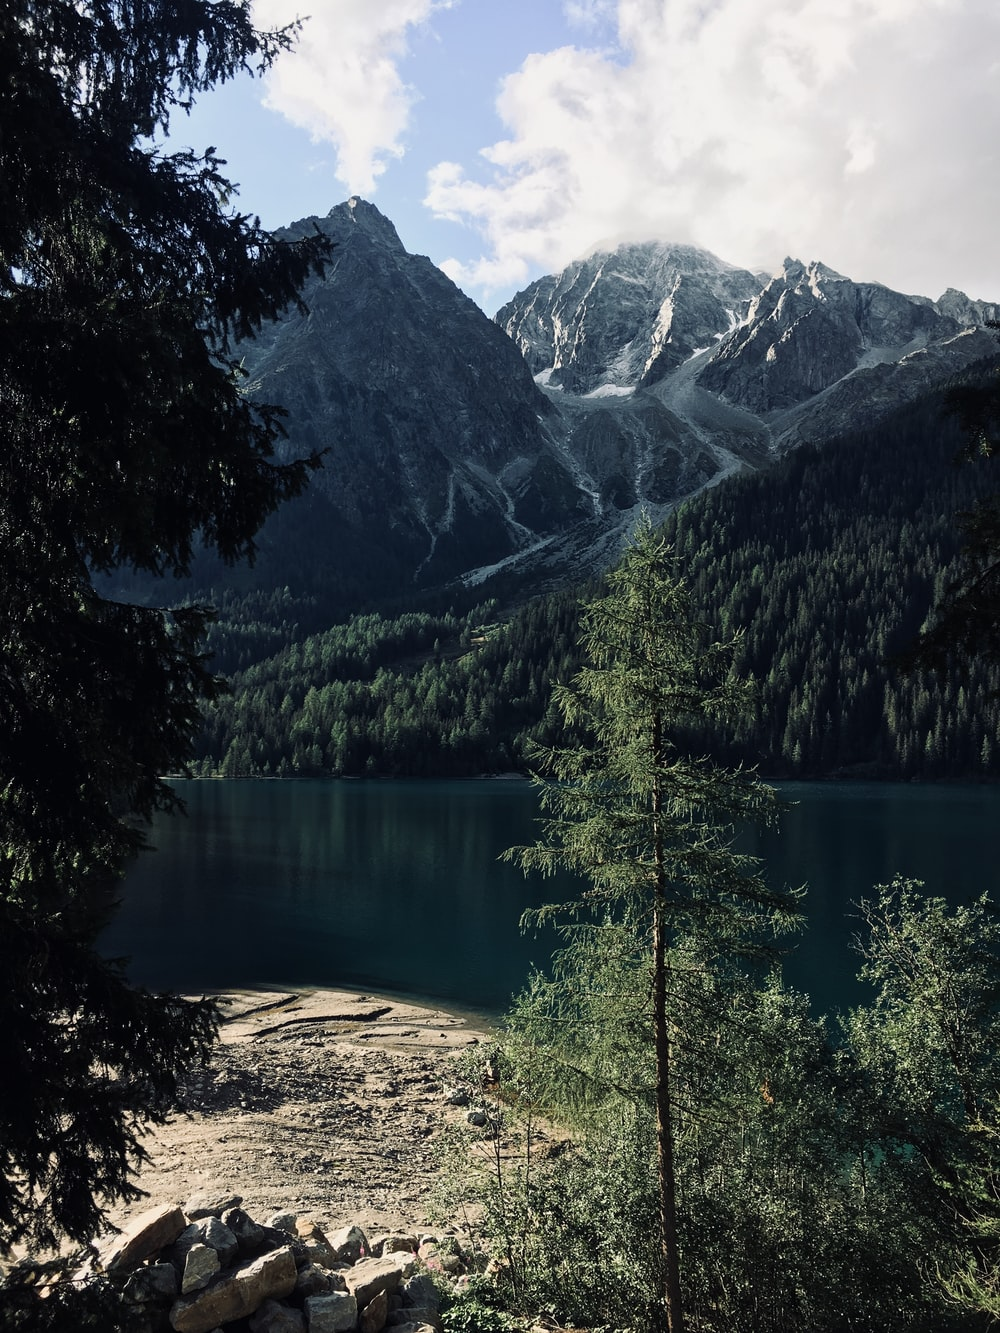 body of water and mountains surrounded by green leaf trees